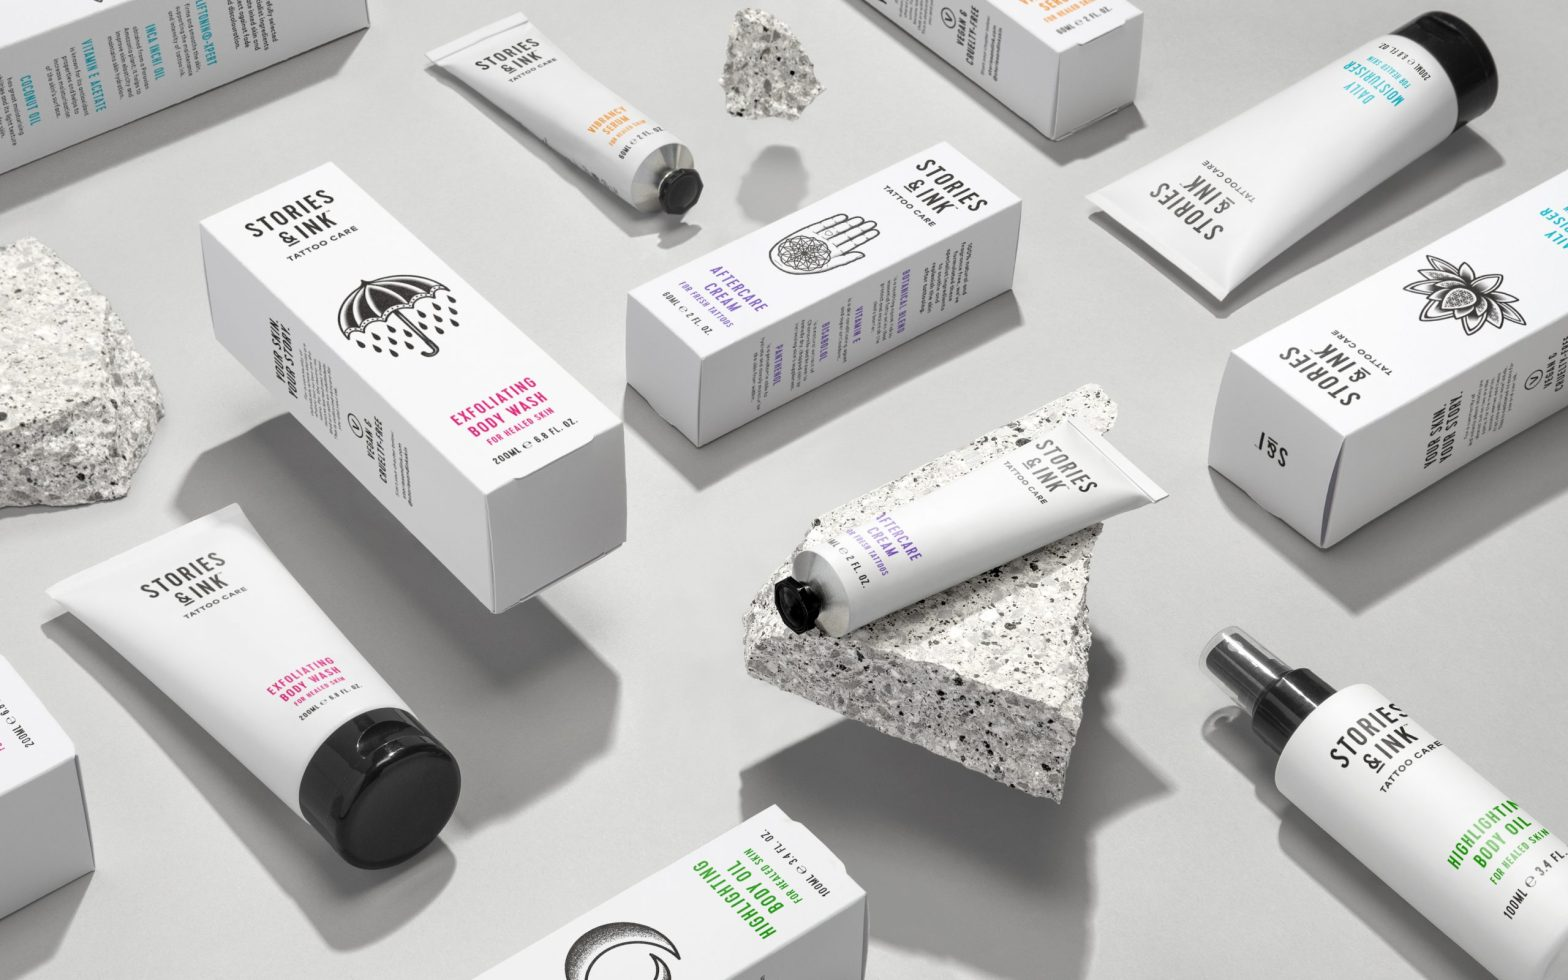 Thumbnail for Brand of the Day: Stories & Ink